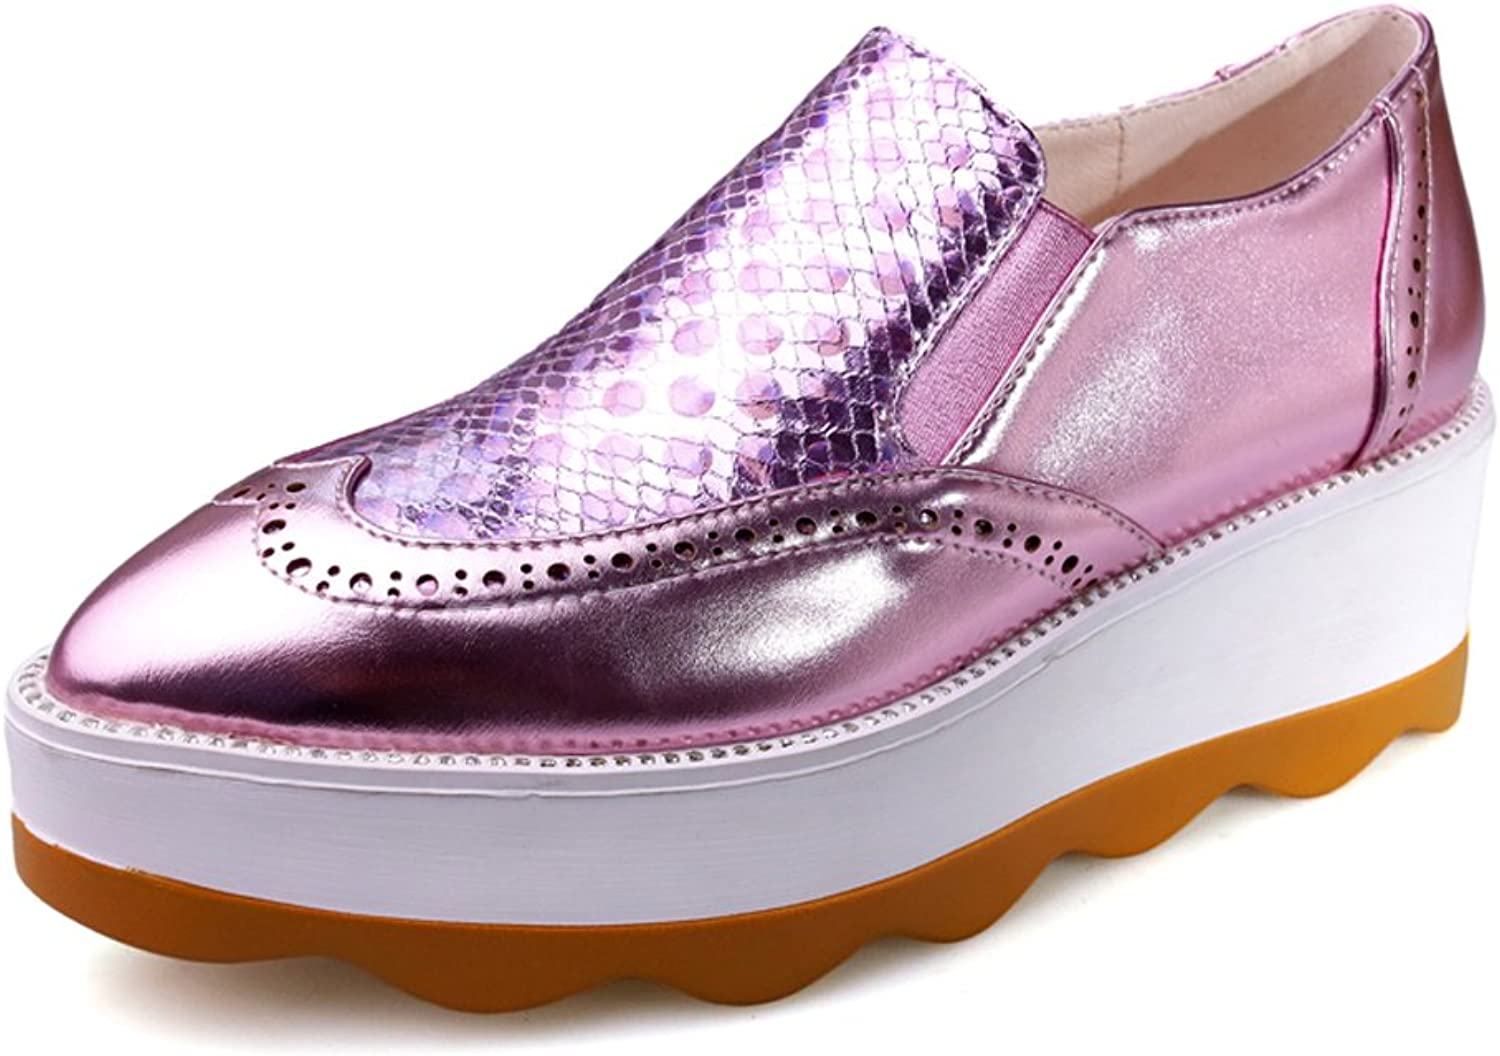 AIWEIYi Womens Platform Wingtips shoes Thick Sole Slip on Oxfords Dress shoes Pink